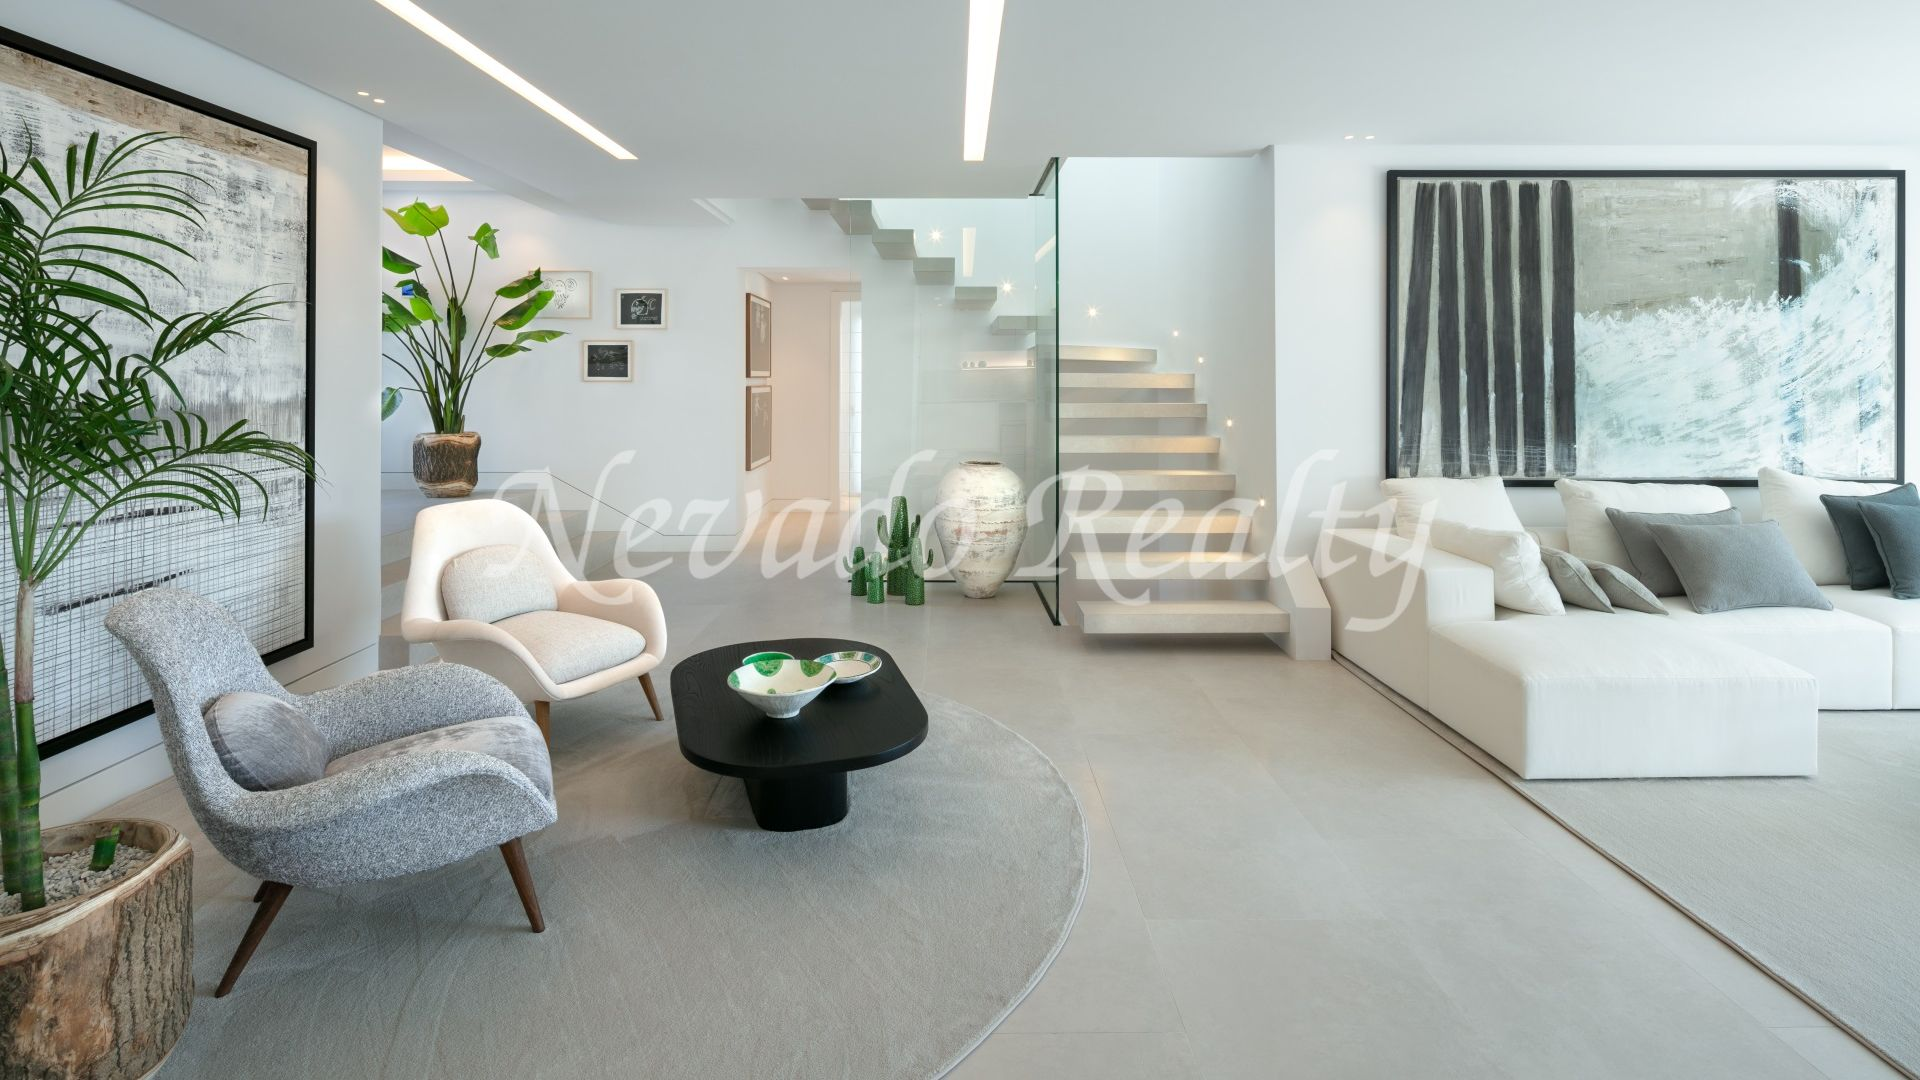 Refurbished contemporary style villa in the heart of the Golf Valley